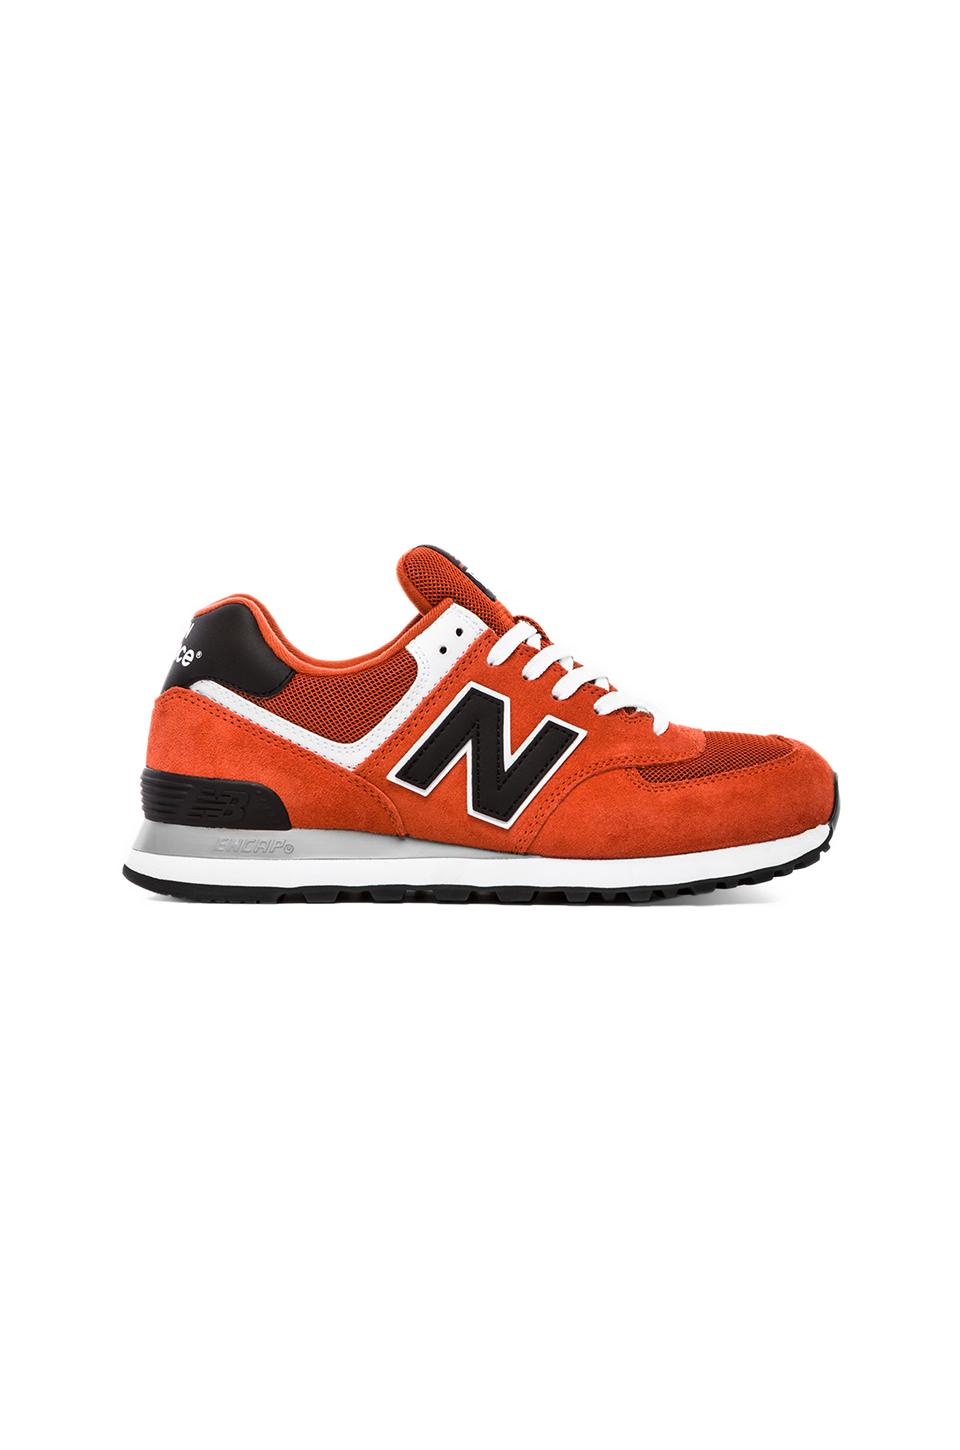 New Balance Varsity ML574 Suede in Orange